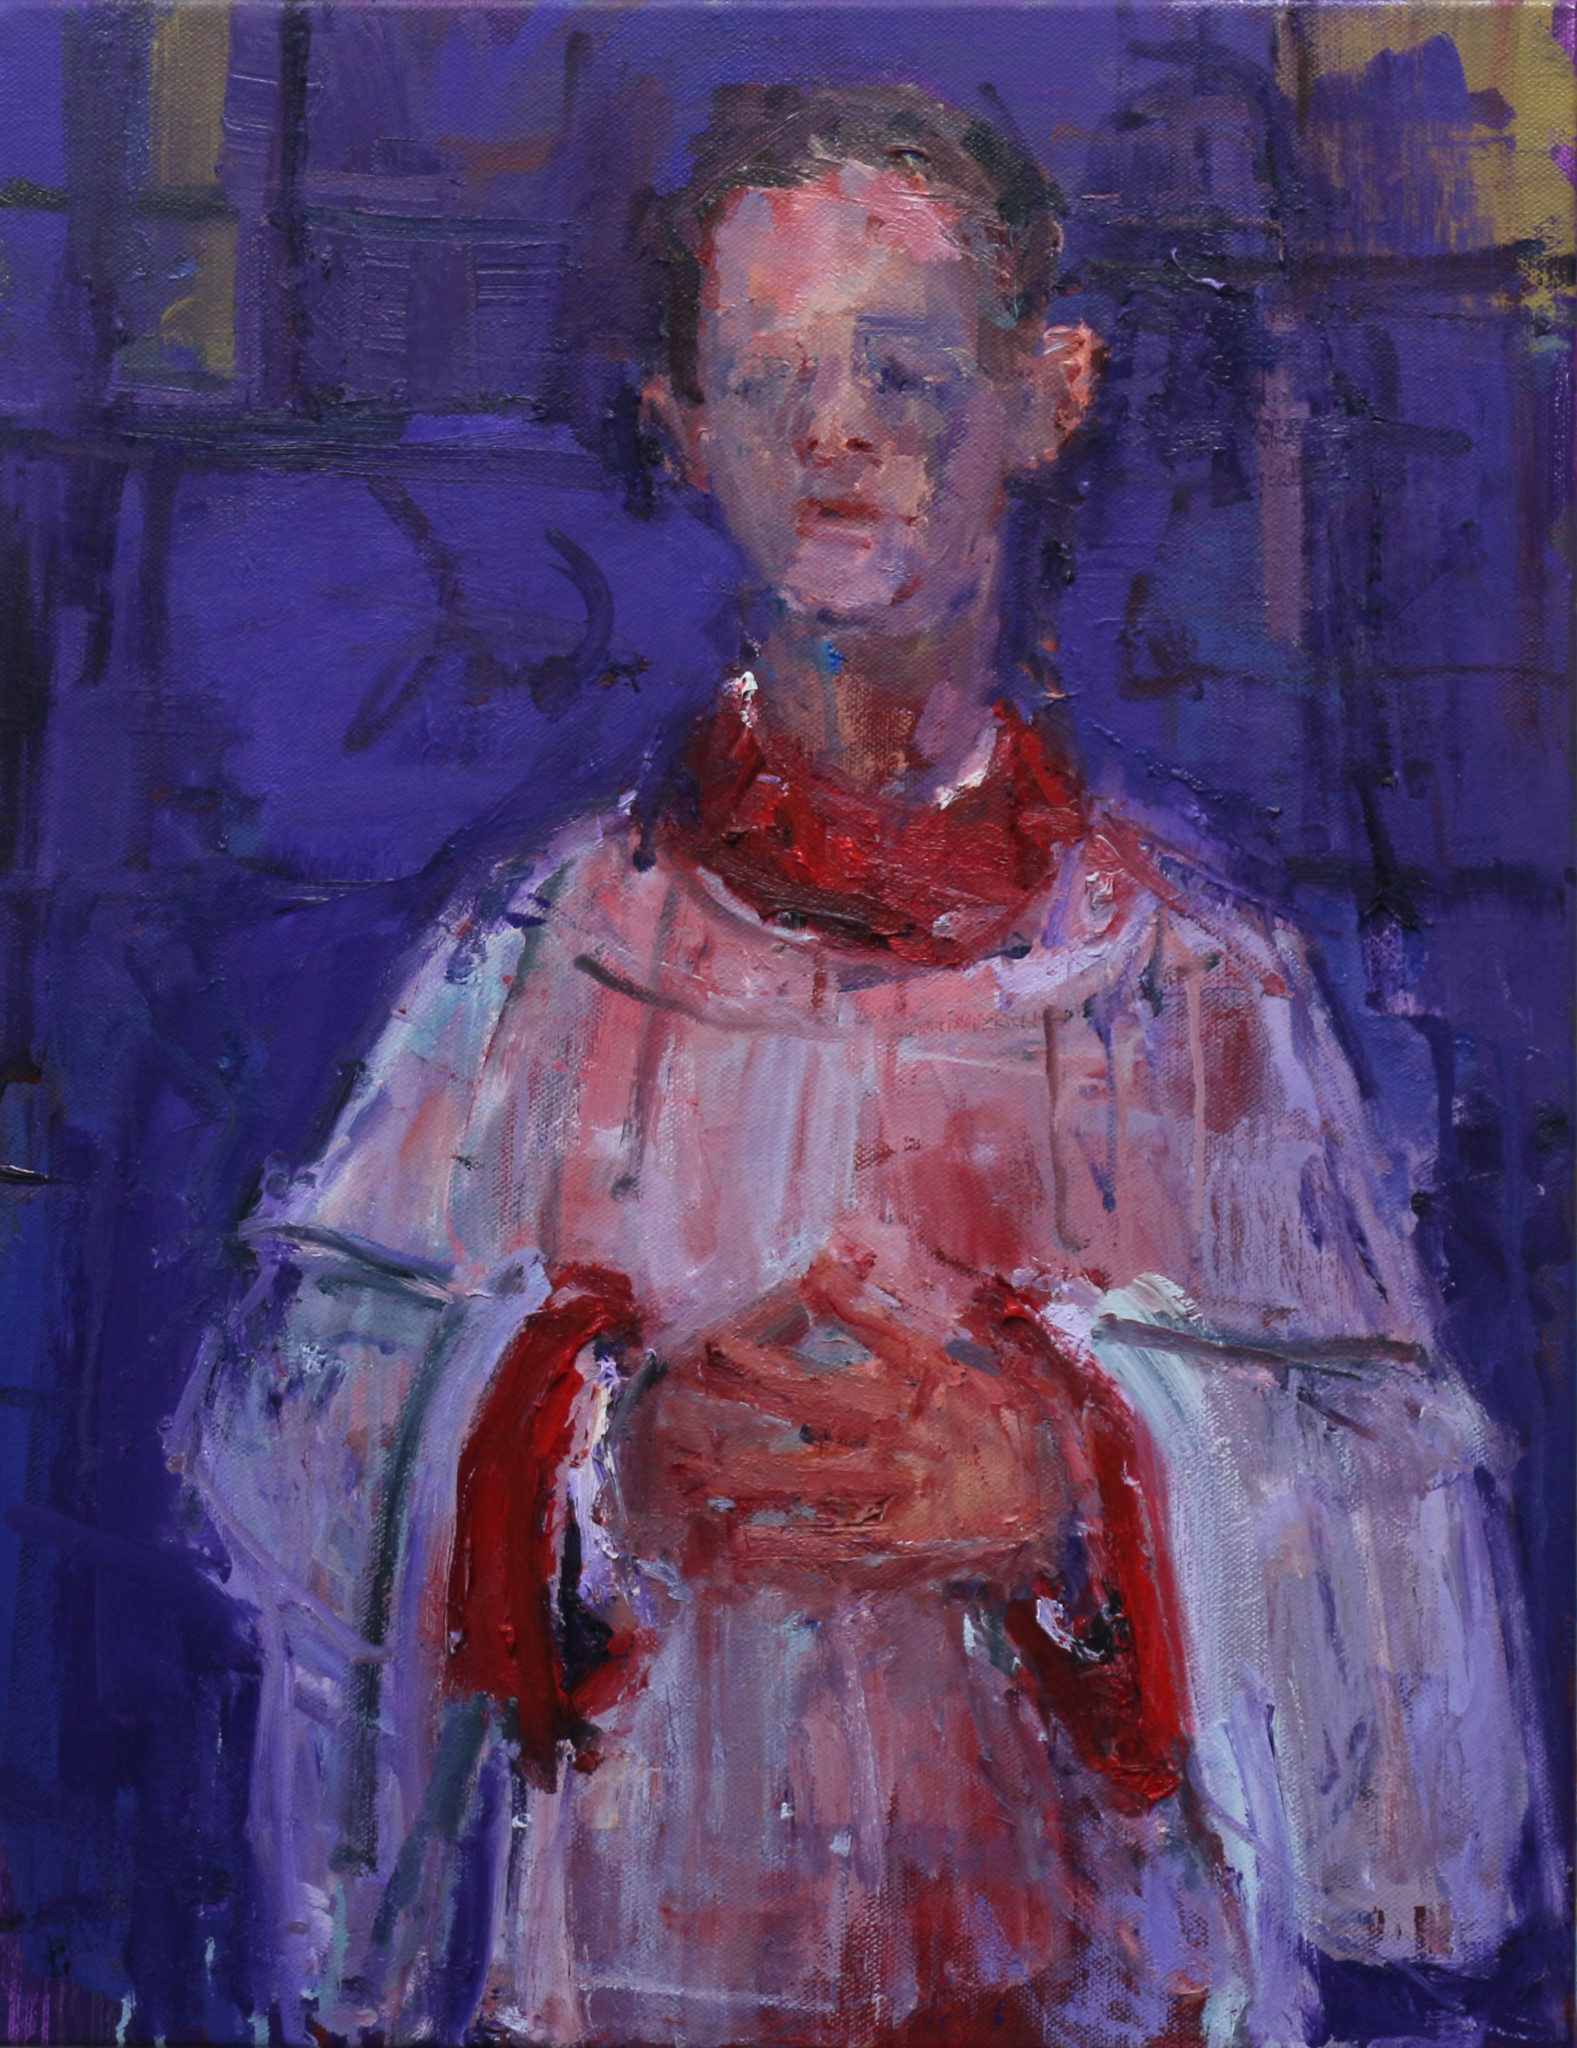 Choir Boy - Homage to Soutine 2